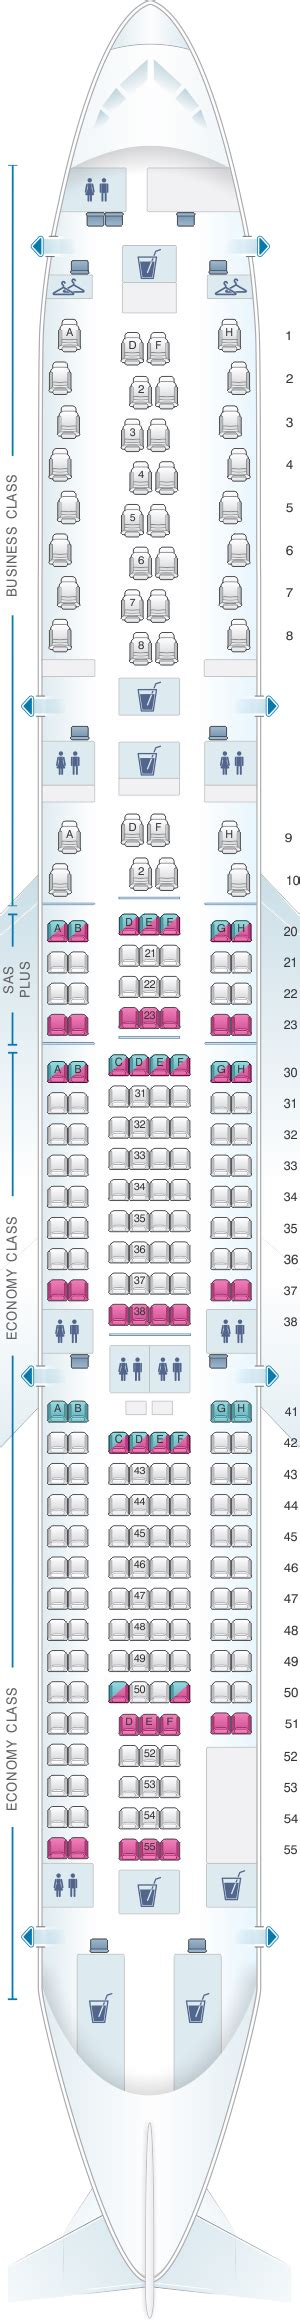 Seat Map Scandinavian Airlines (SAS) Airbus A340 300